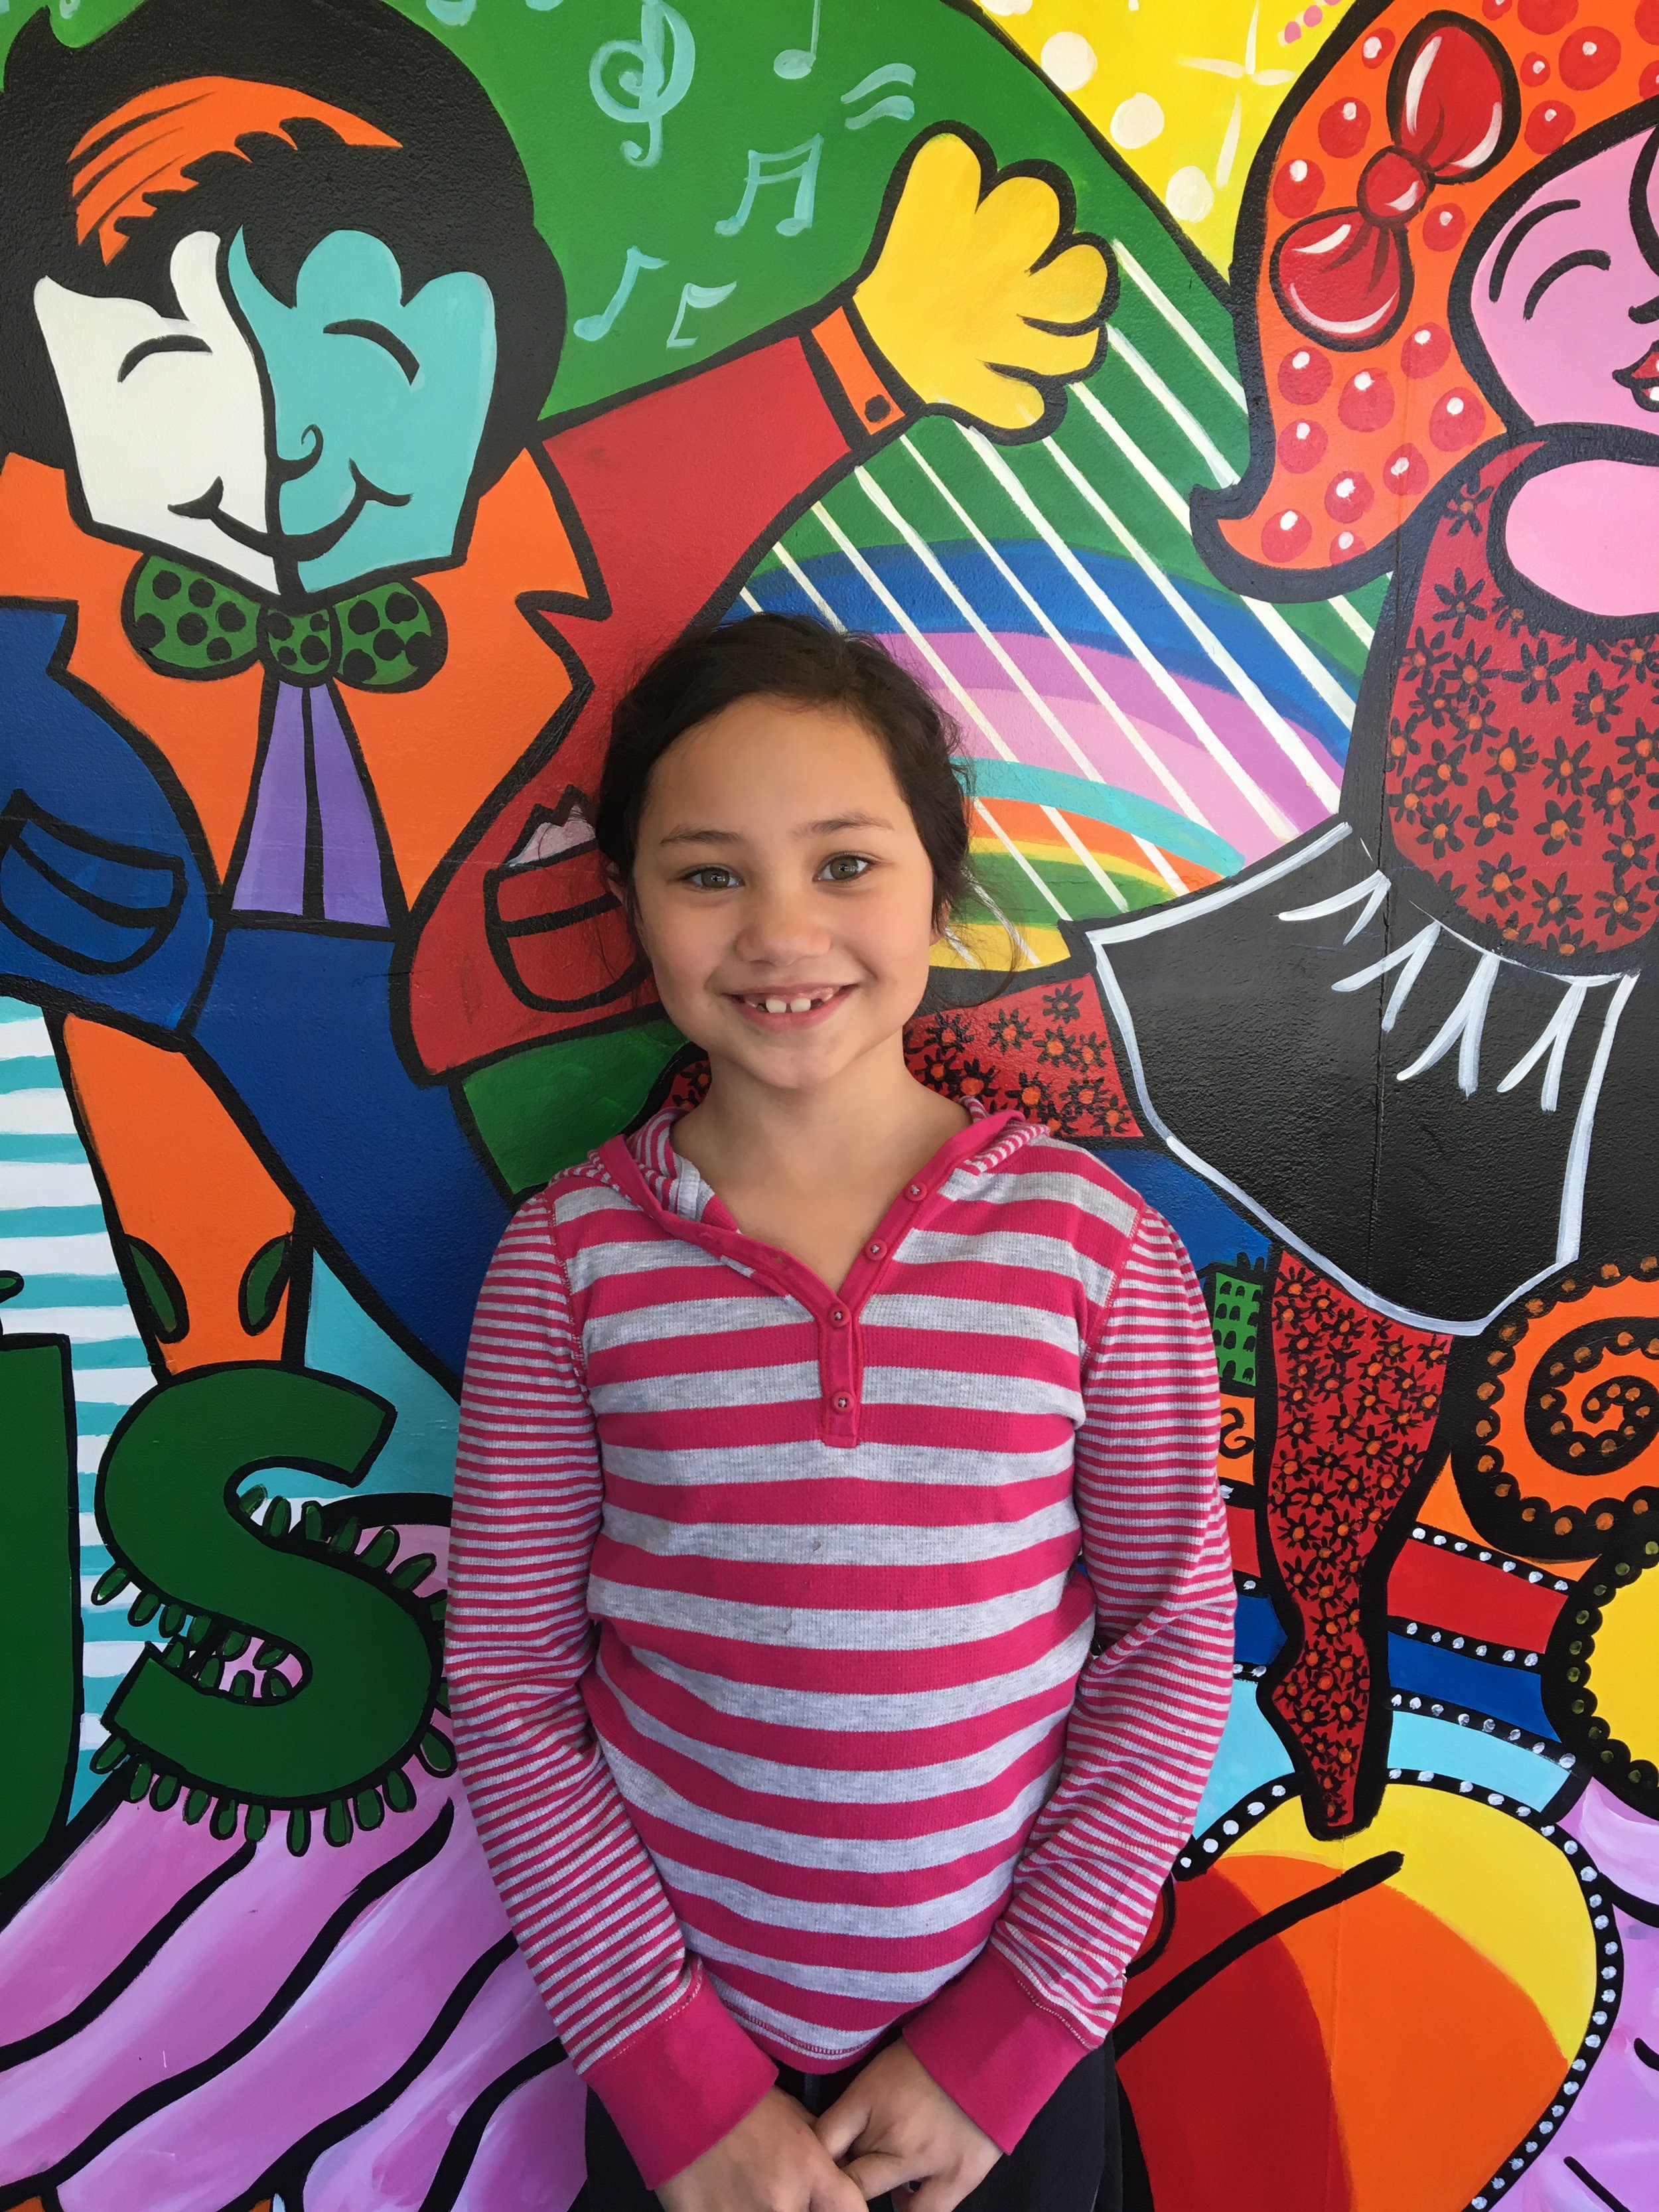 Erica Alverio loves to dance ballet because it gives her more energy. When she grows up she wants to be a dance teacher. She loves art and the color black. Her fun fact is her name is Noelle because she was born around Christmas time.